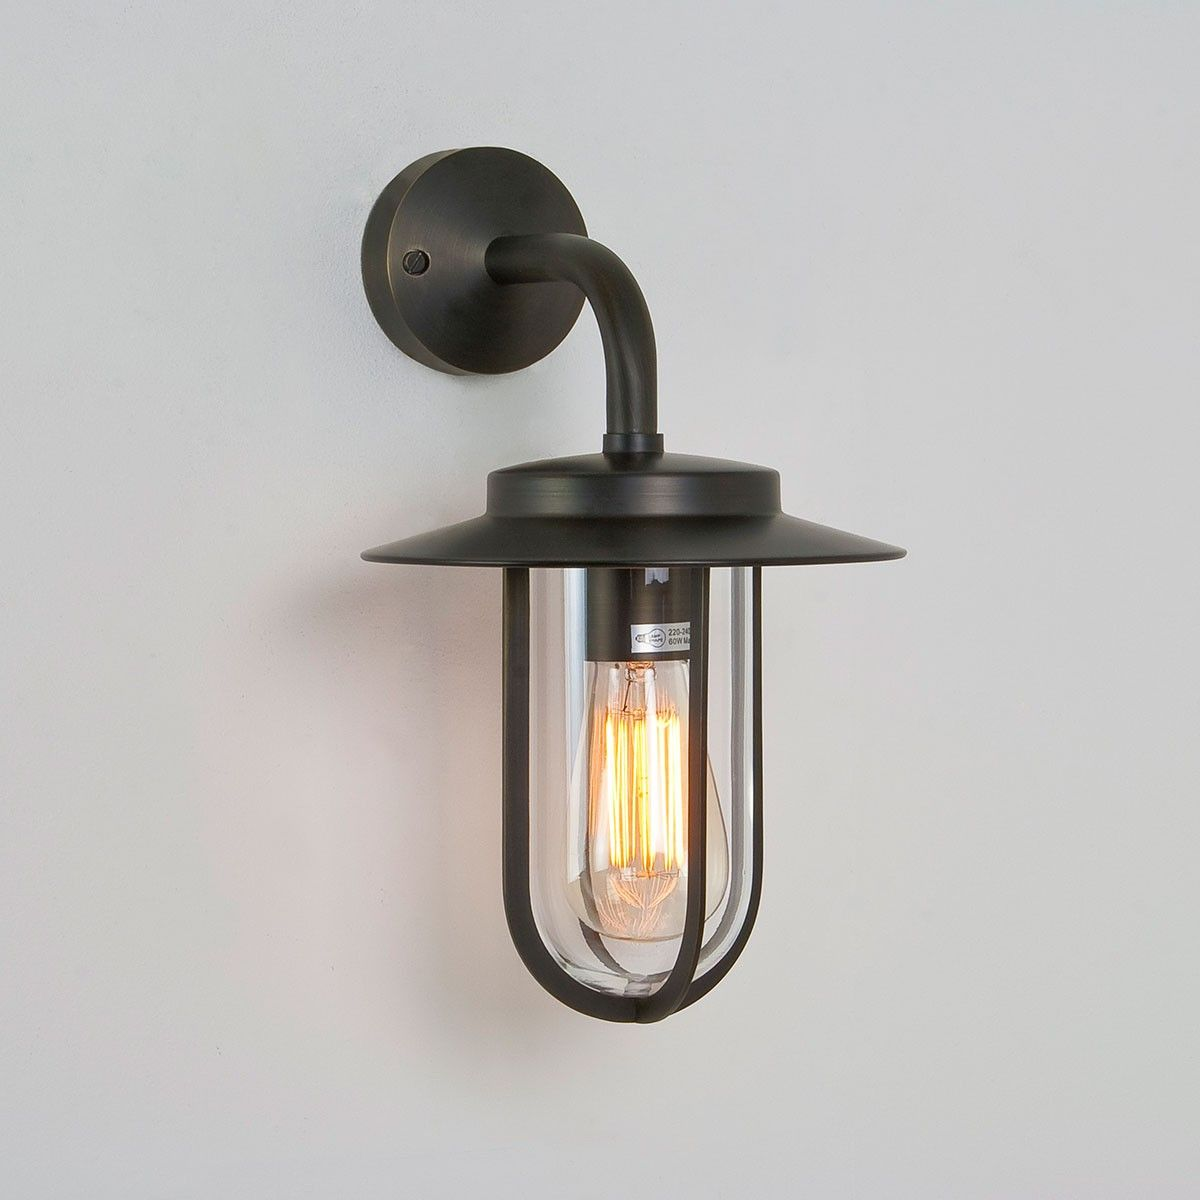 Outdoor lamps  Pin by Lаvinia Dеjа on Suprise  Pinterest  Outdoor walls Lights